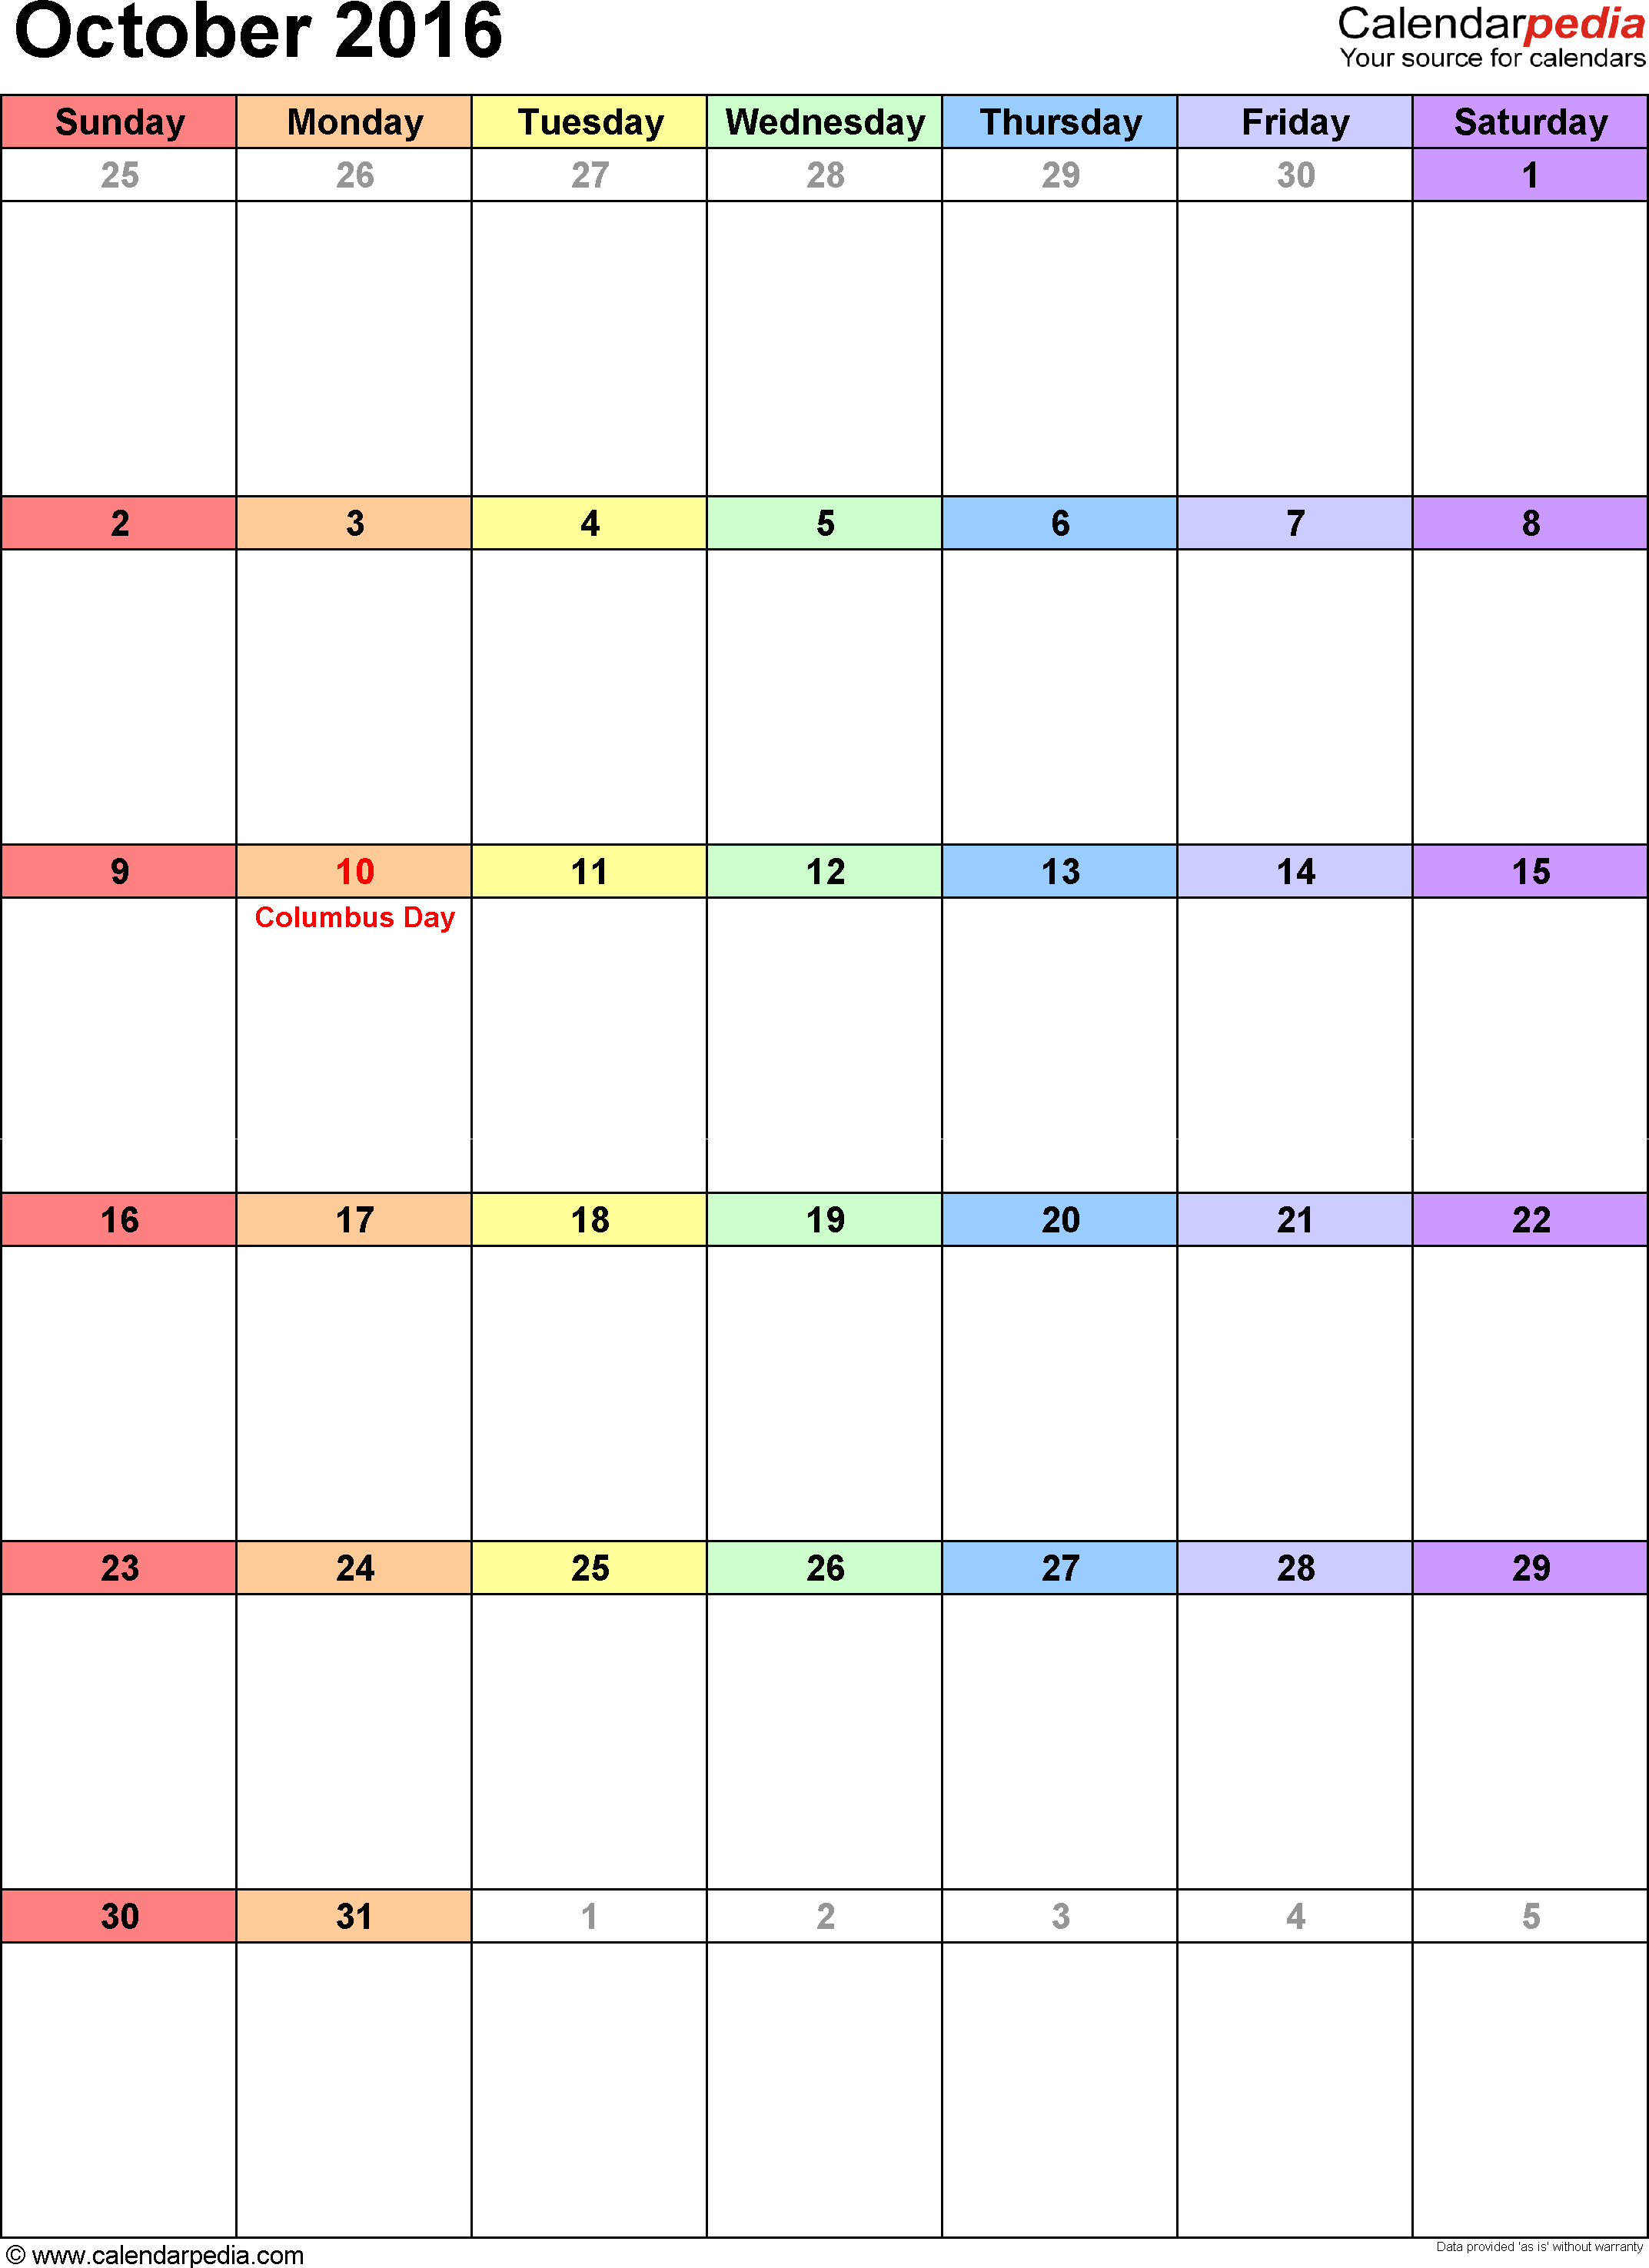 October 2016 calendar as printable Word, Excel & PDF templates